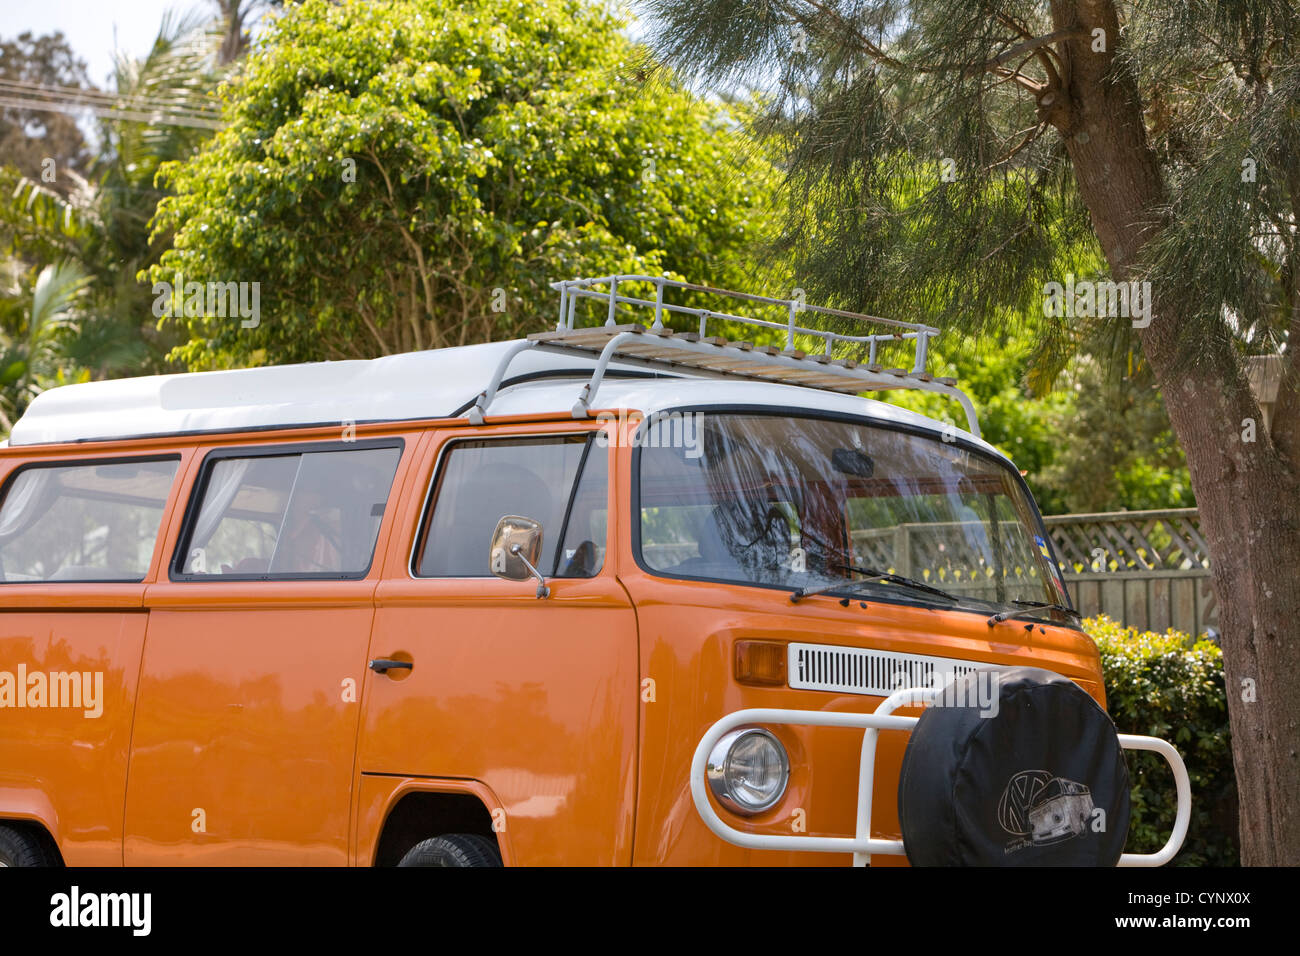 volkswagen vw combi kombi campervan, famously used by surfers and those travelling around australia - Stock Image